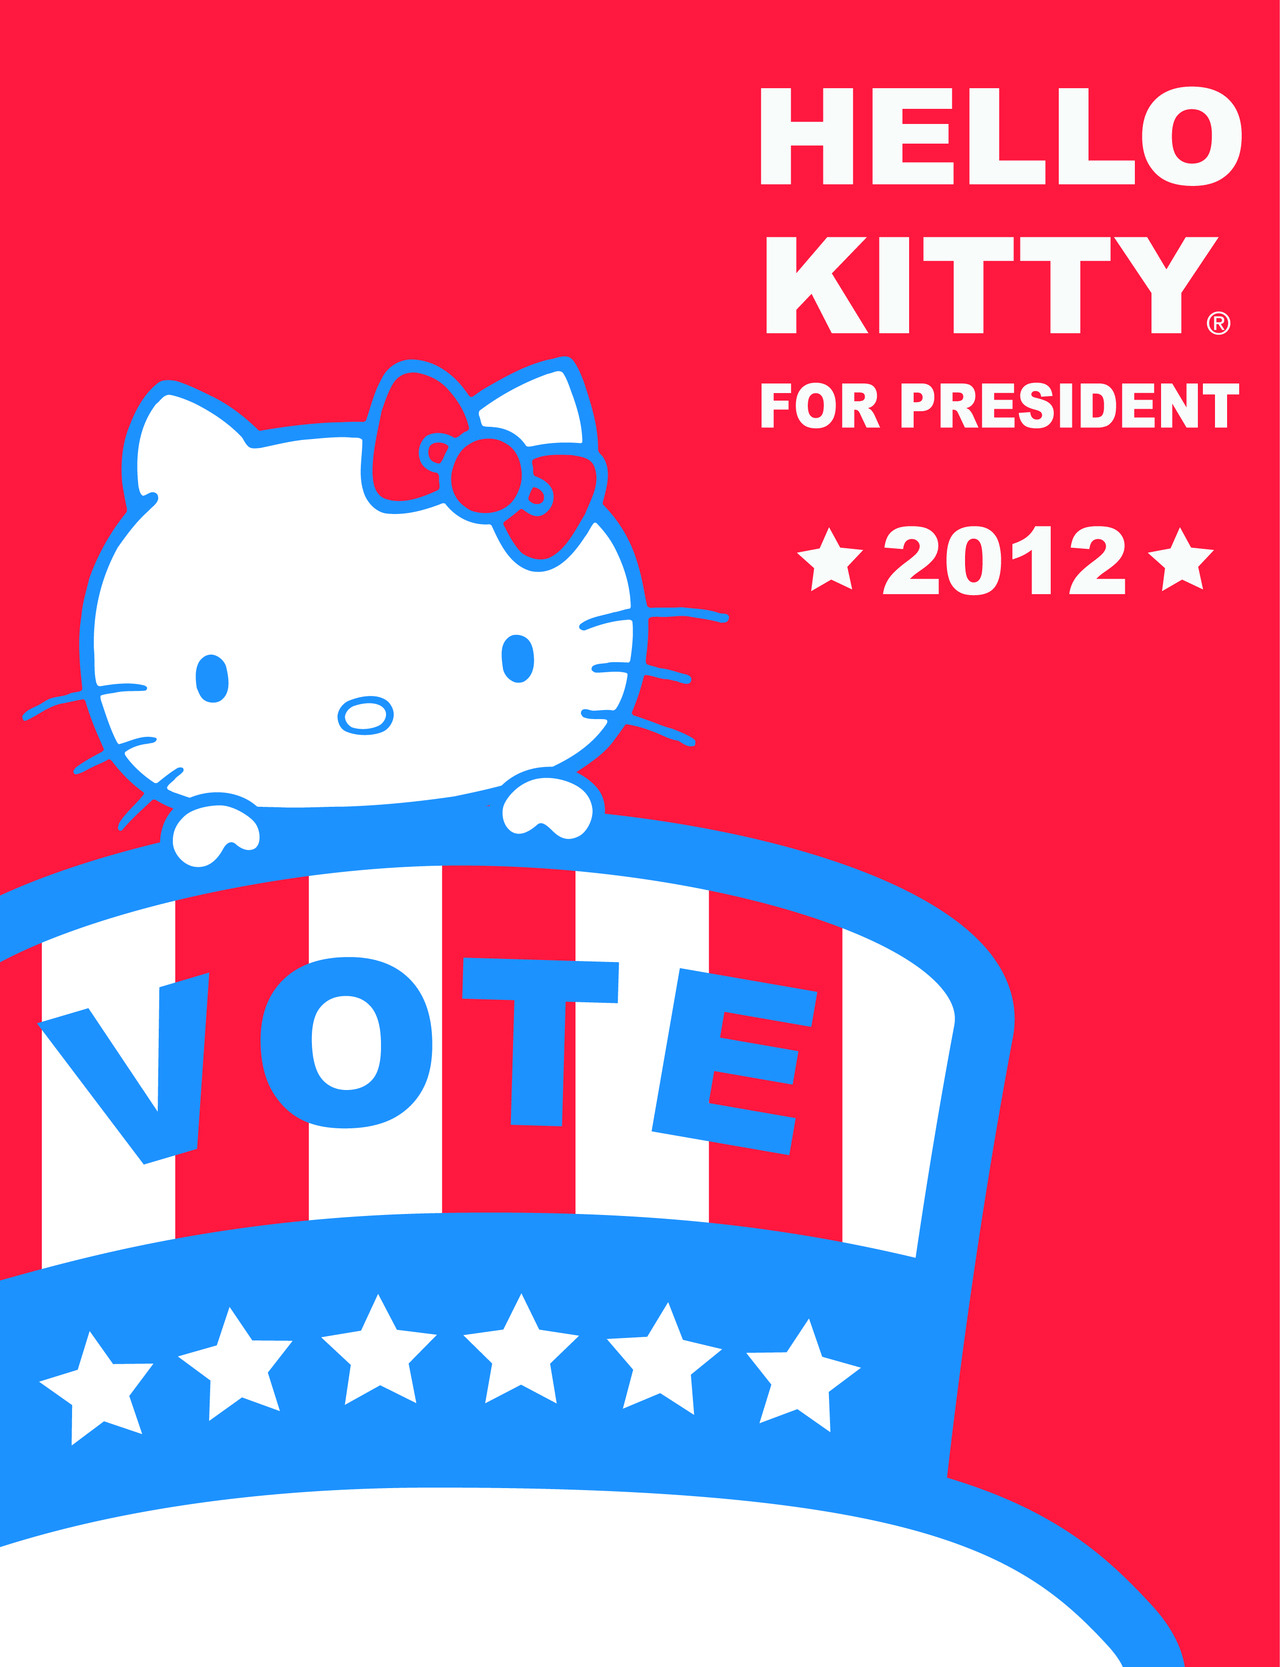 Hello Kitty for President